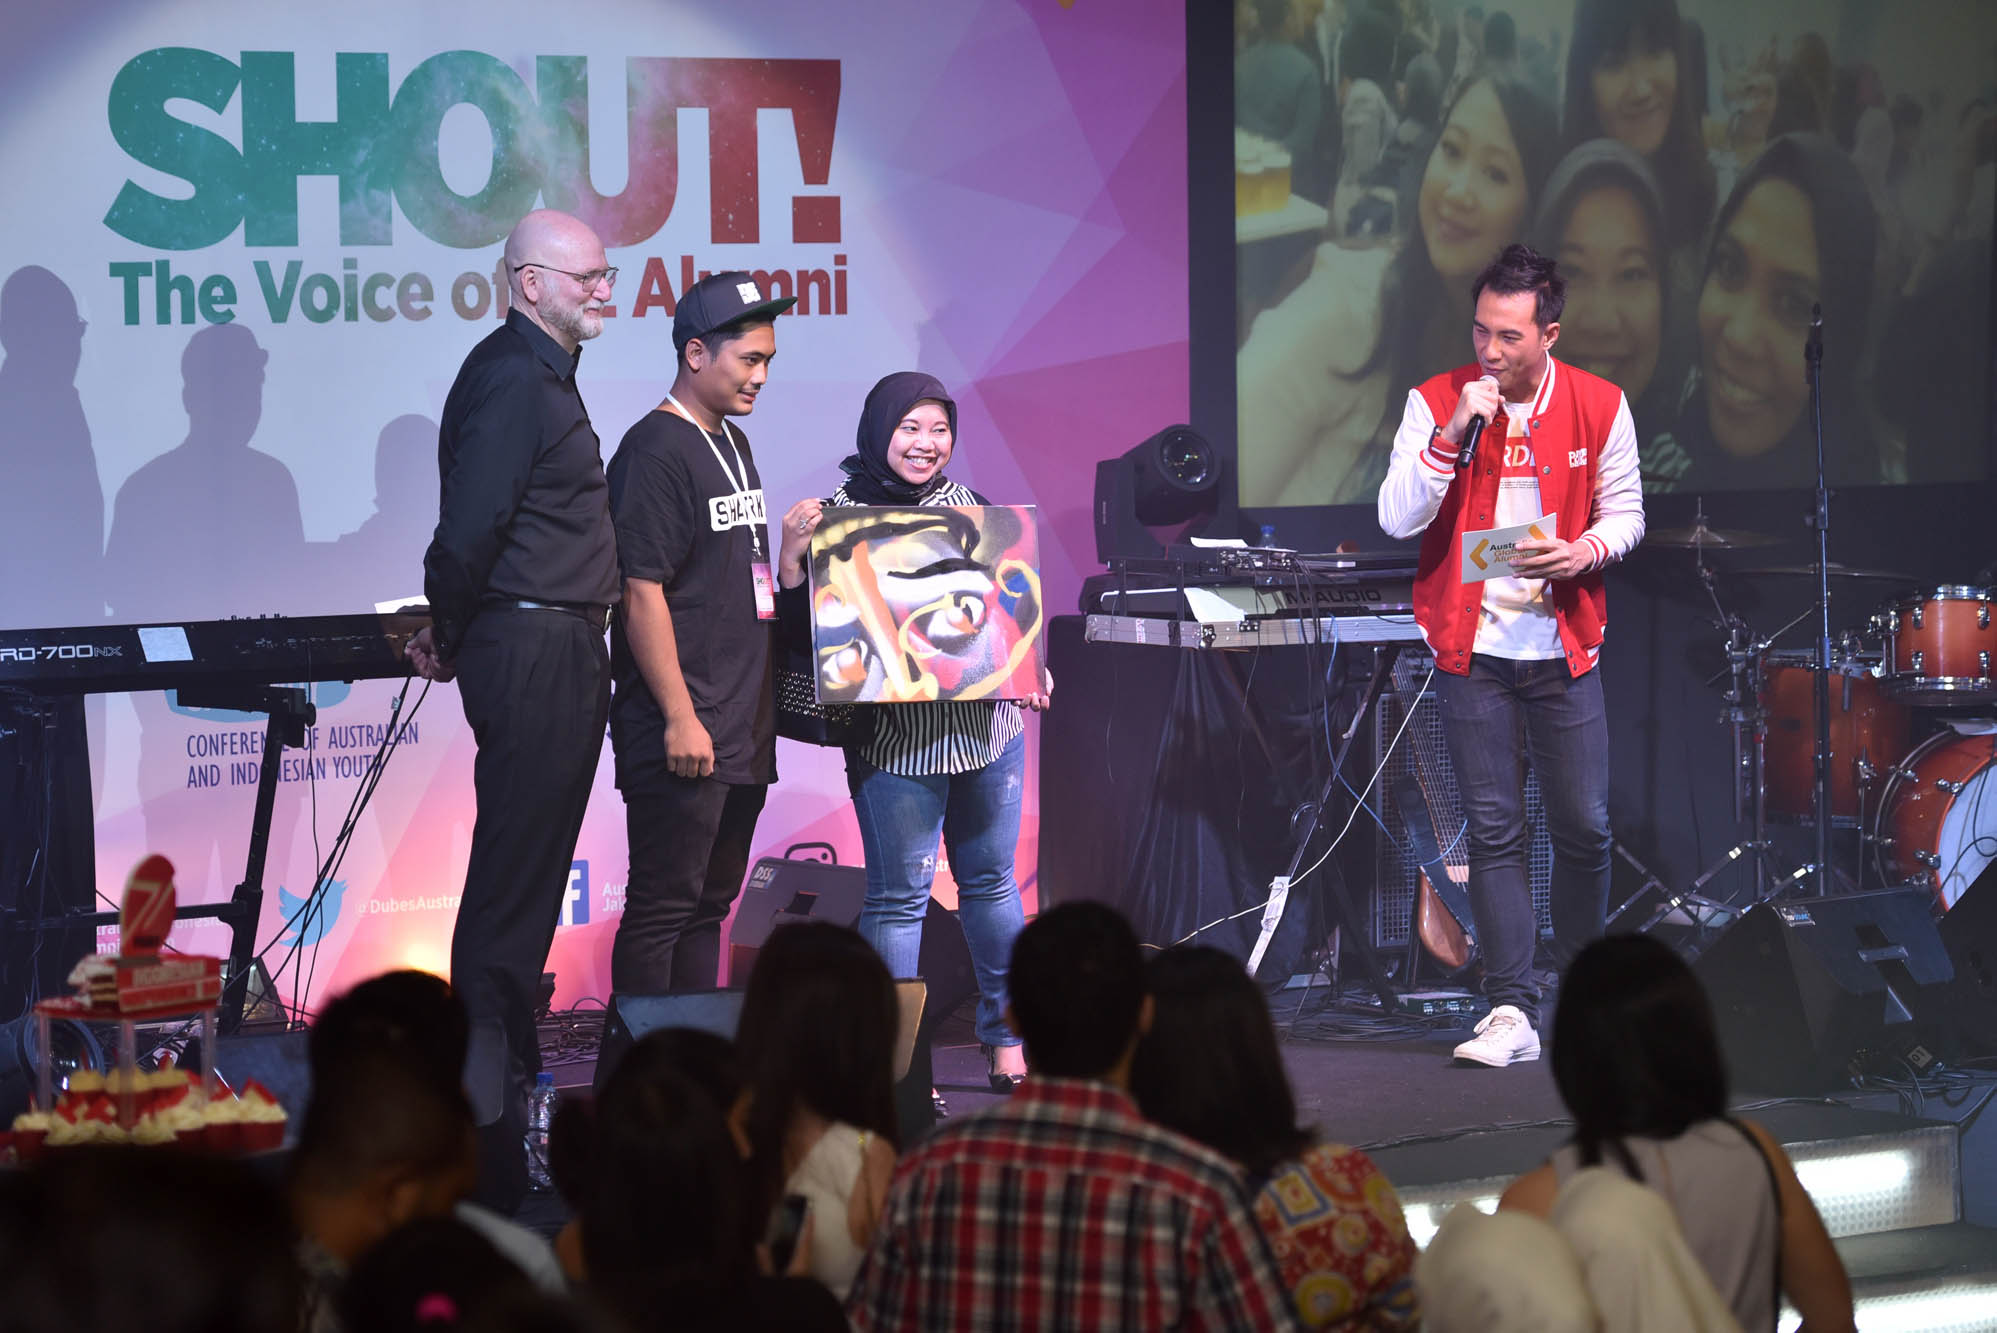 Australian alumnus wins prize at the SHOUT! The Voice of Oz Alumni on 19 August 2016 in Jakarta.